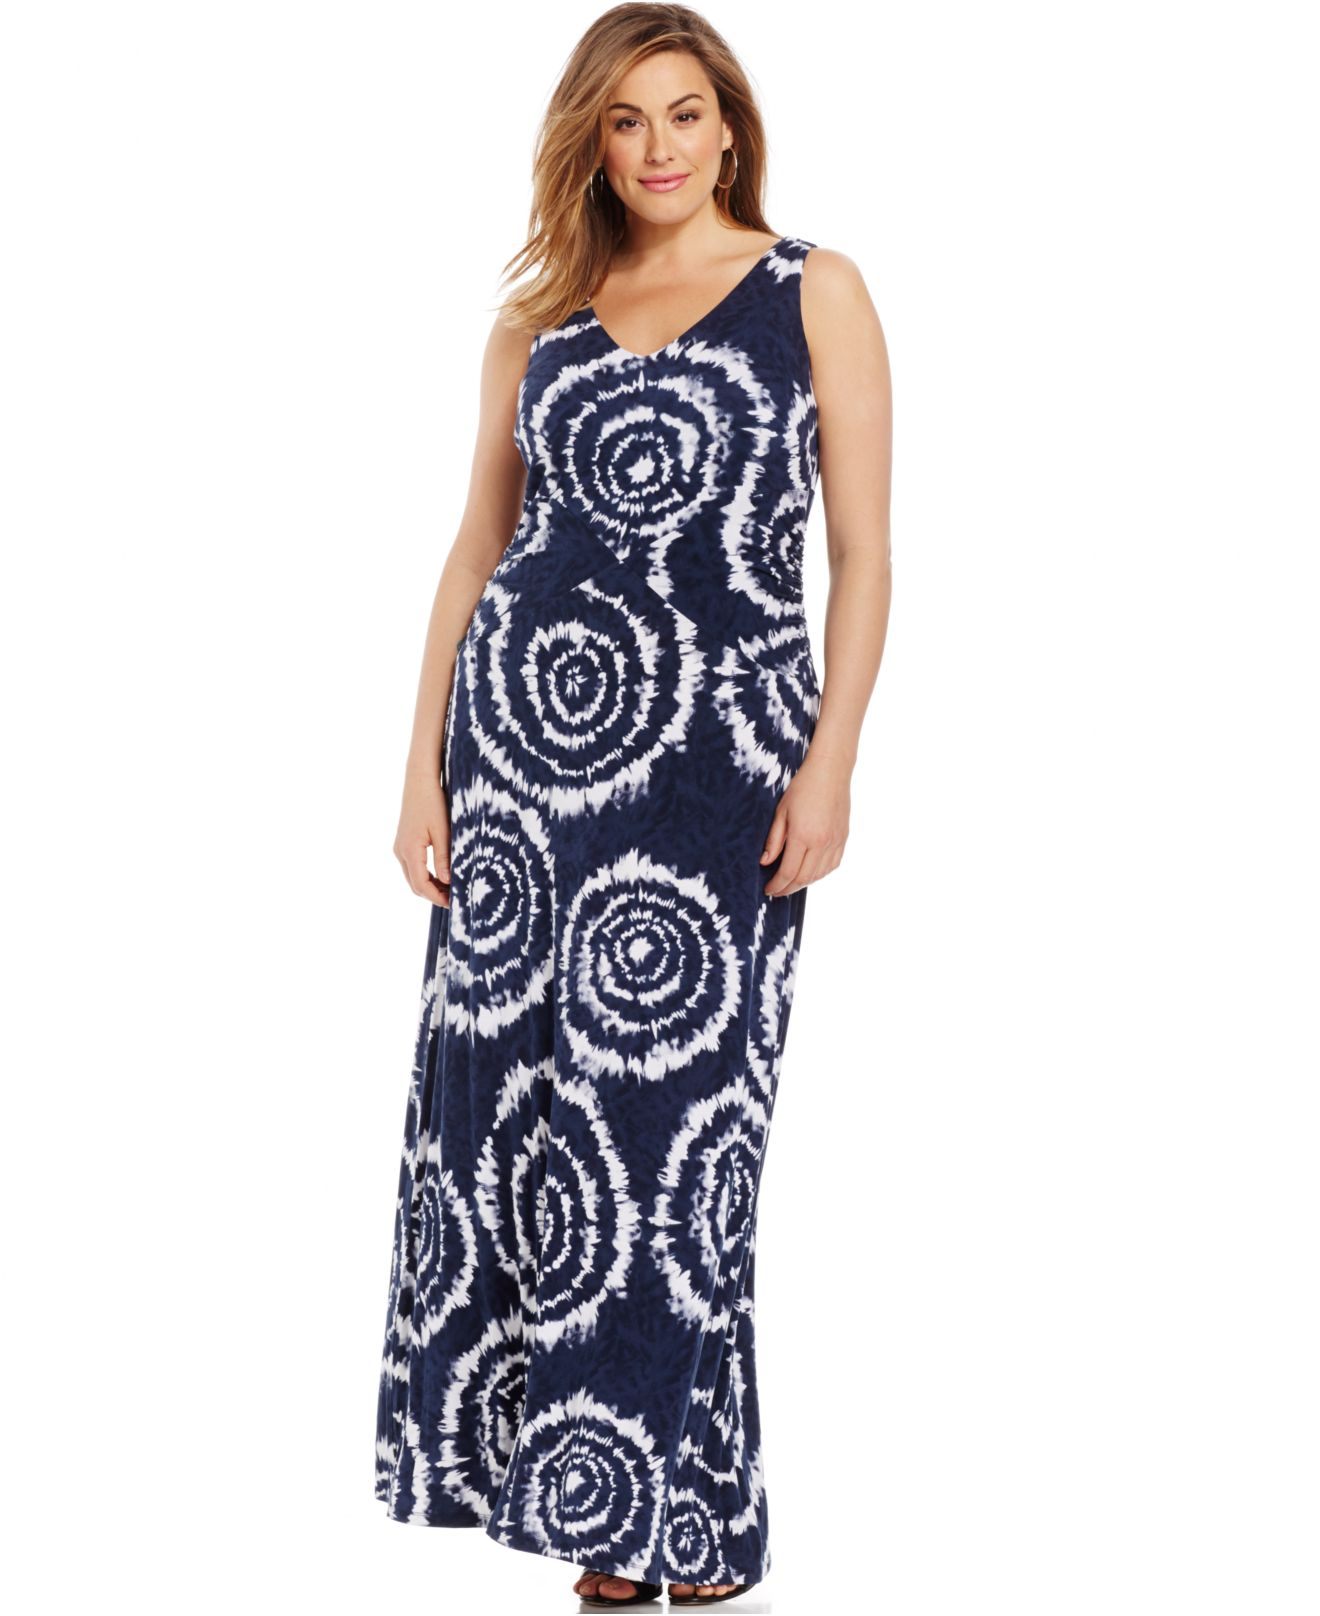 Inc international concepts Plus Size Tie-dyed Maxi Dress in Blue ...